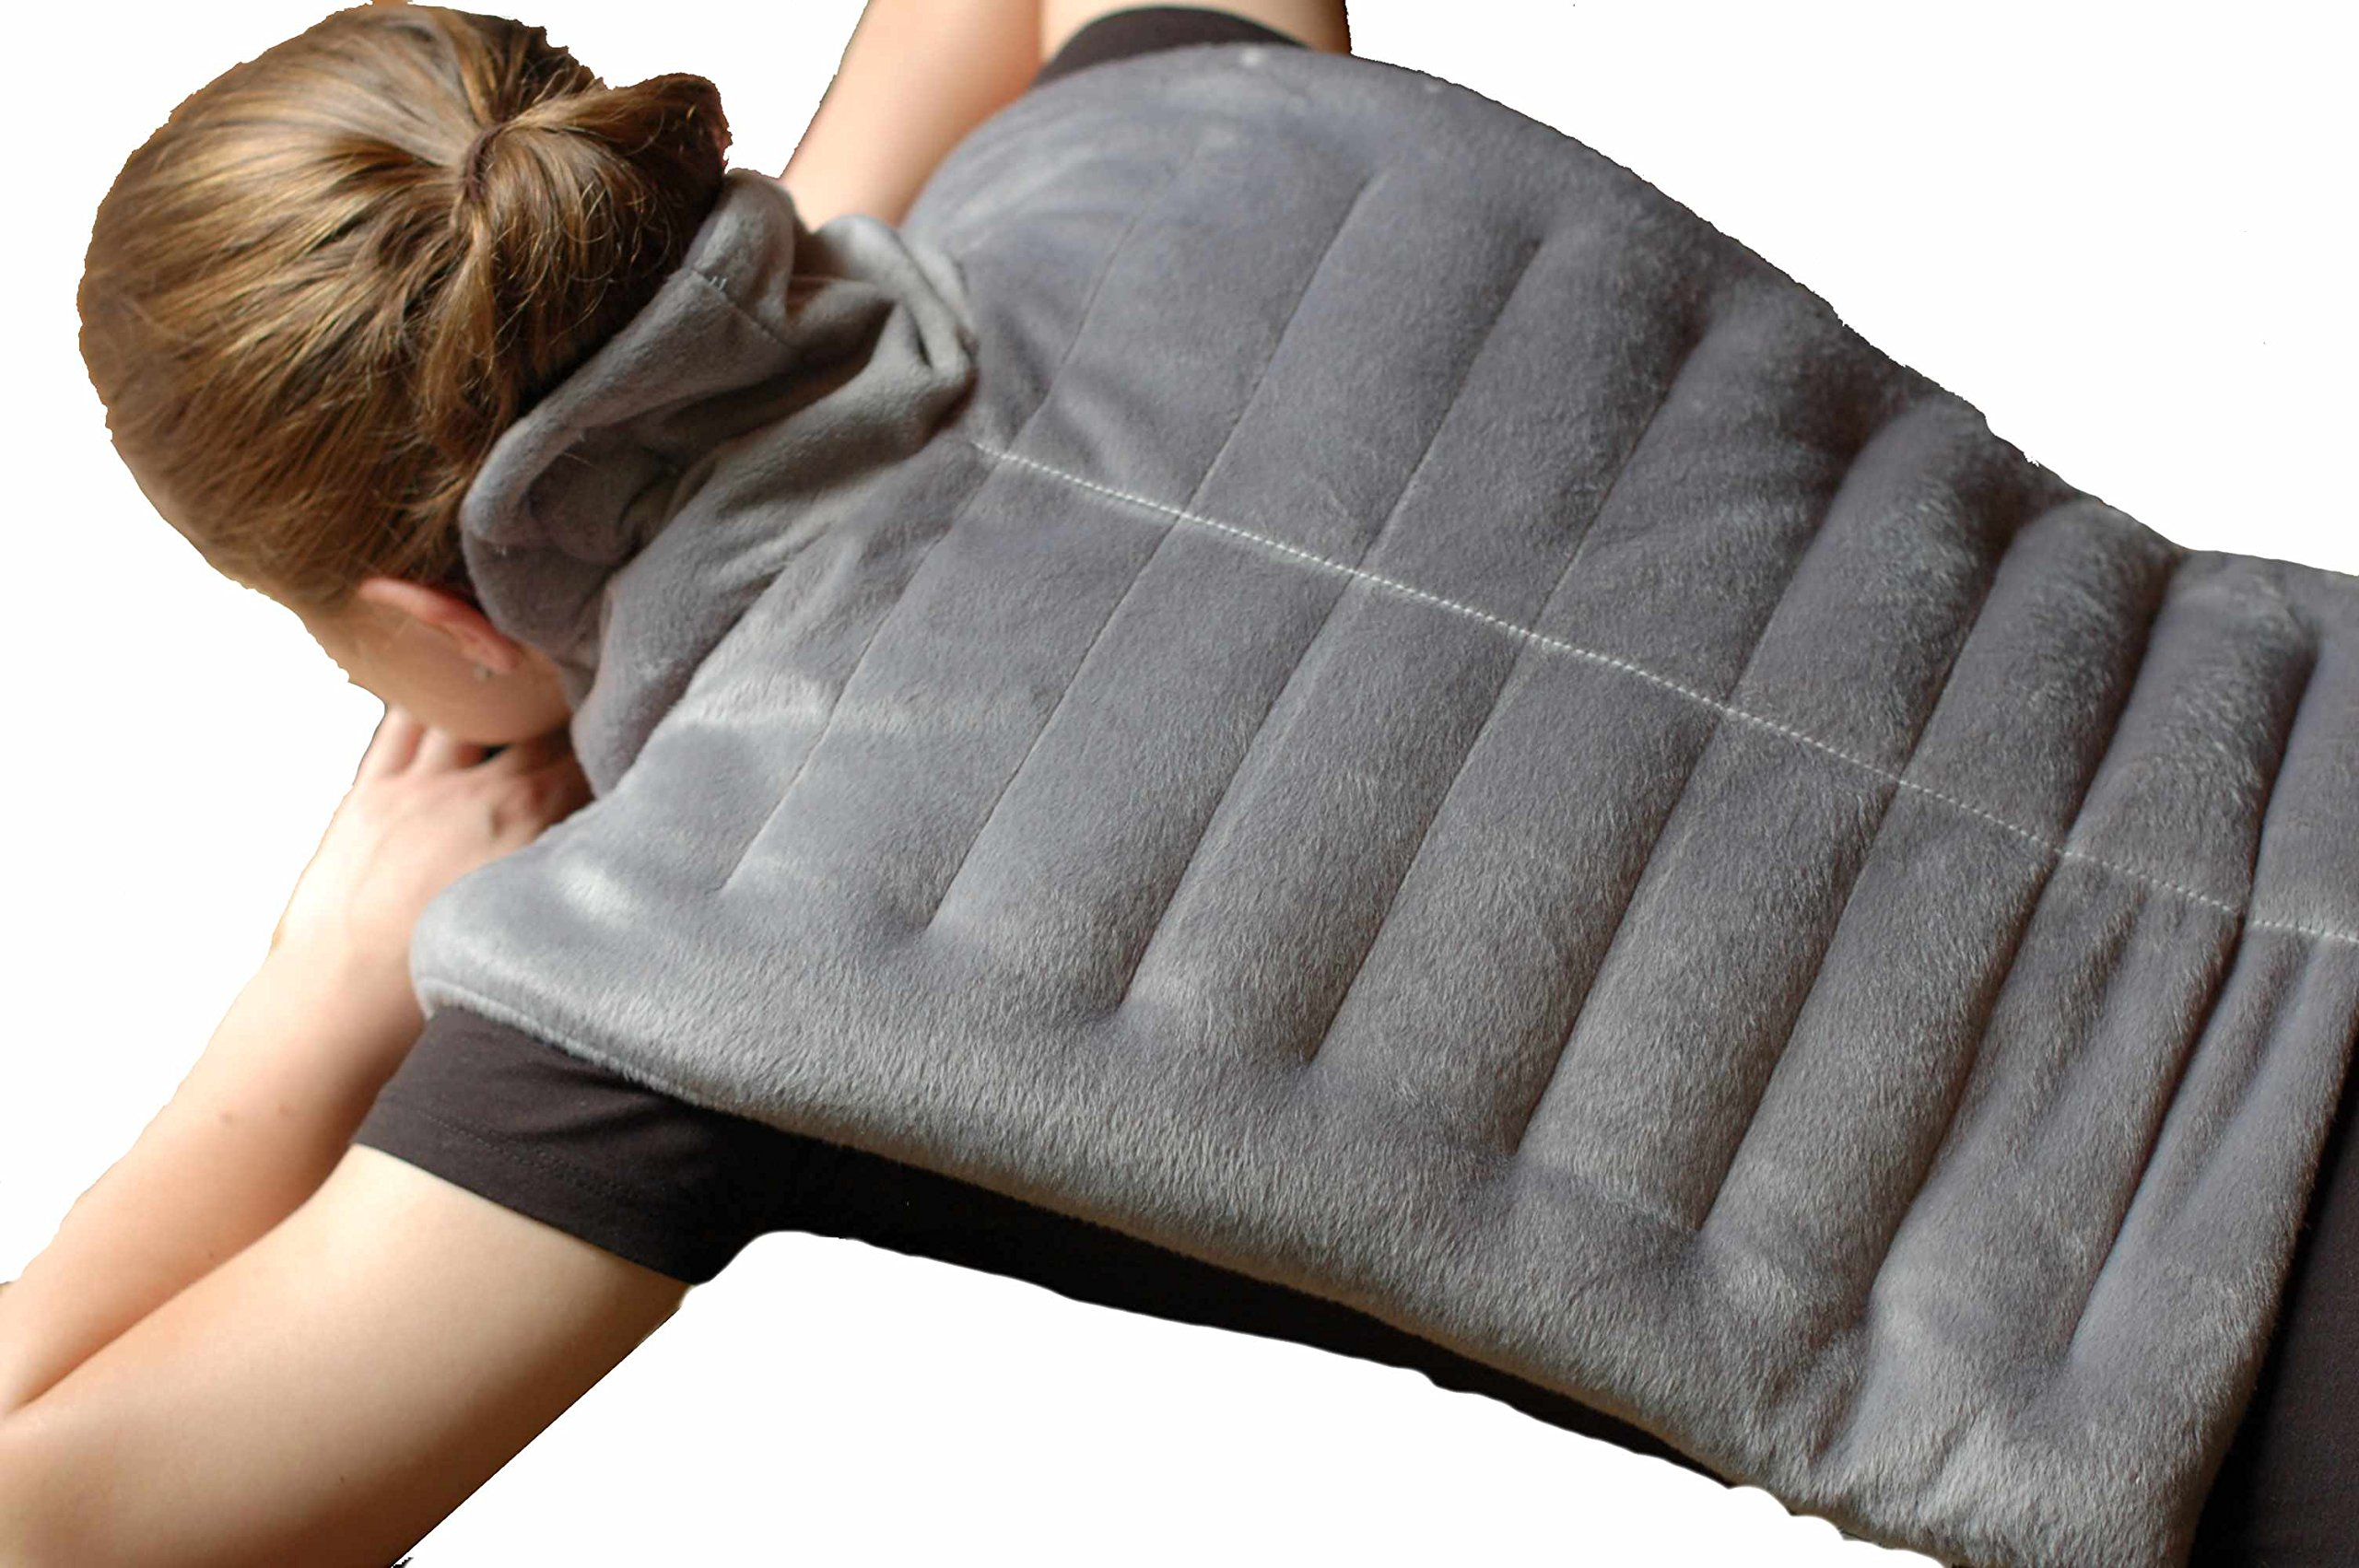 Premium Heated Herbal Hot/Cold Therapy Neck , Shoulder and Back Wrap - 16'' x 24'' - FREE SLEEP MASK INCLUDED !